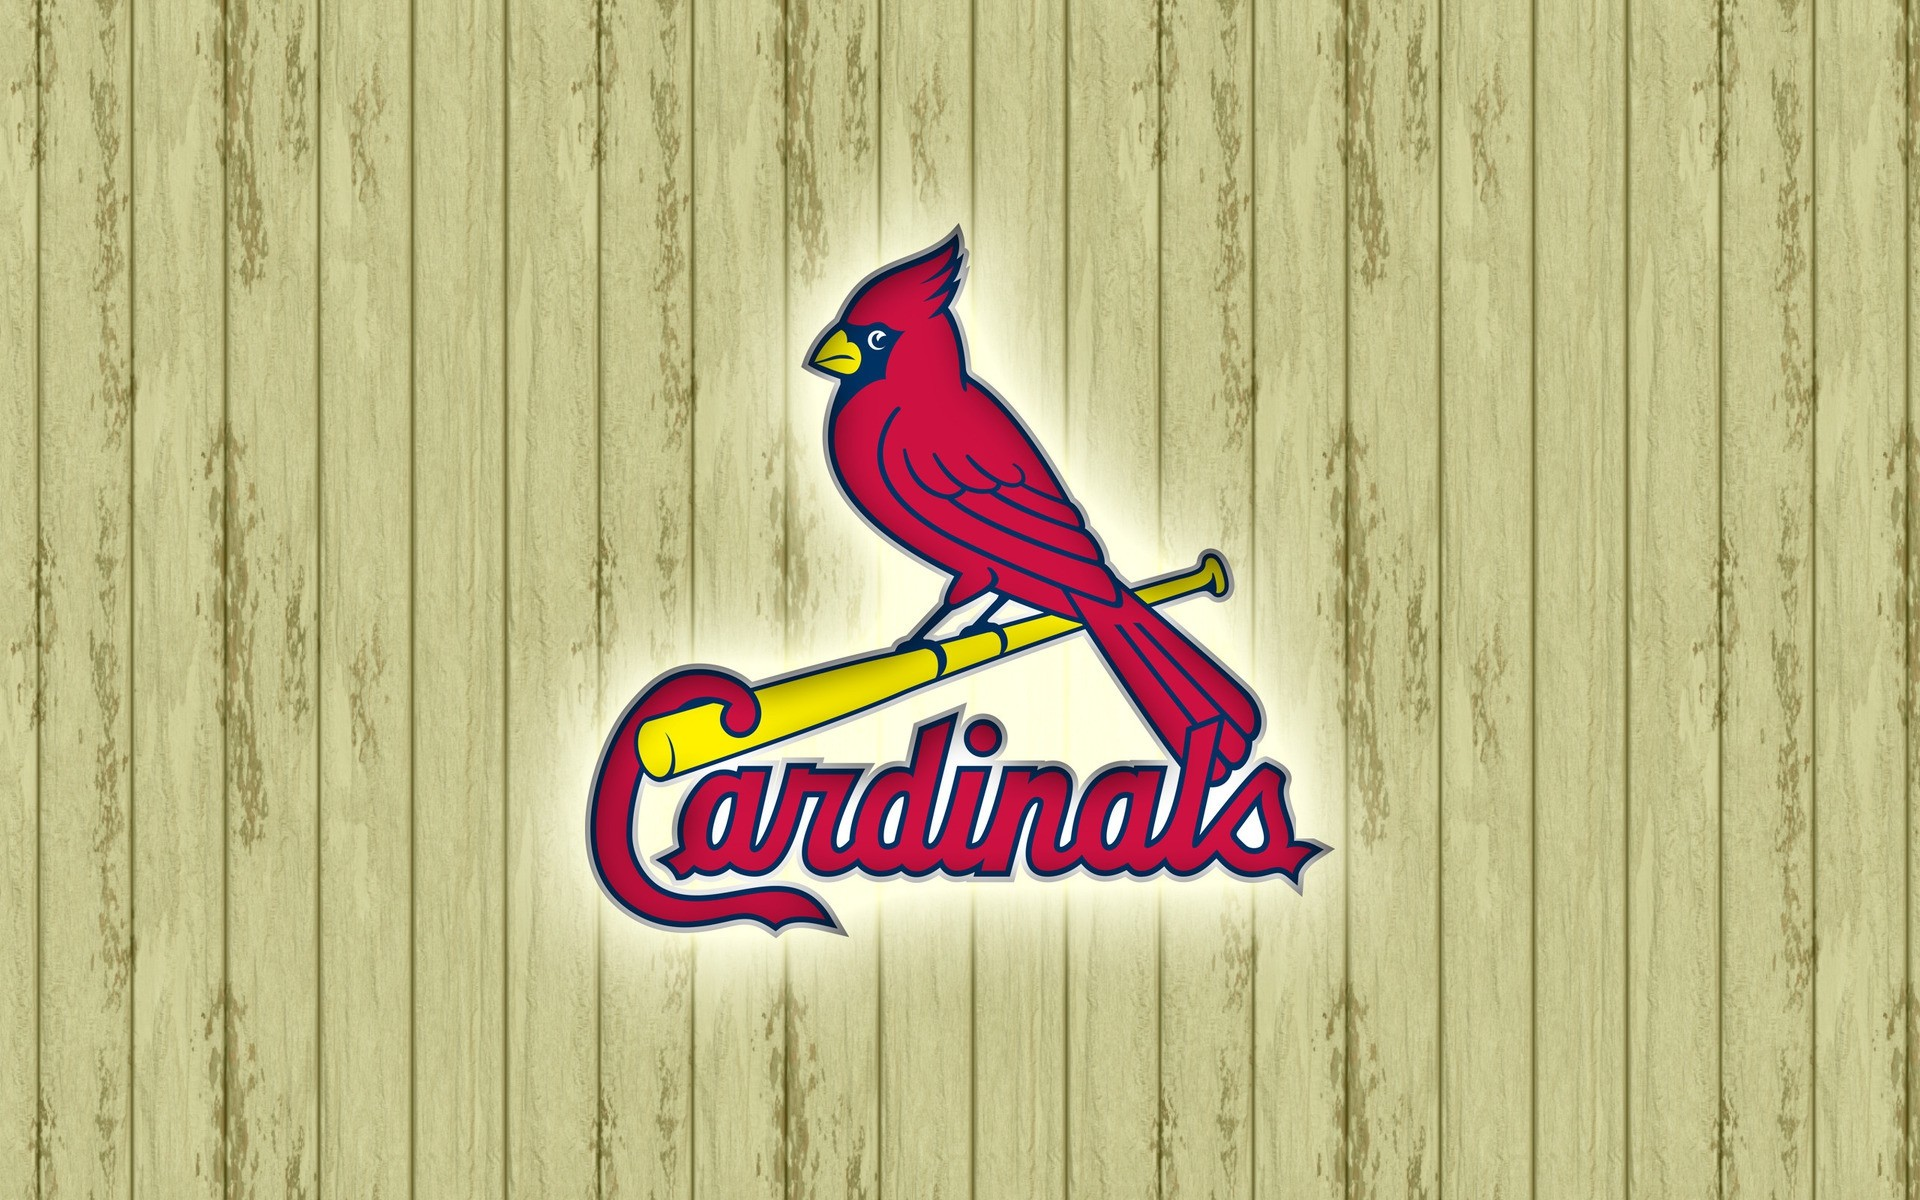 1920x1200 Last year's Cardinals team was impressive, but the 2014 St Louis Cardinals  team could be even better, as their young players start to come of age.